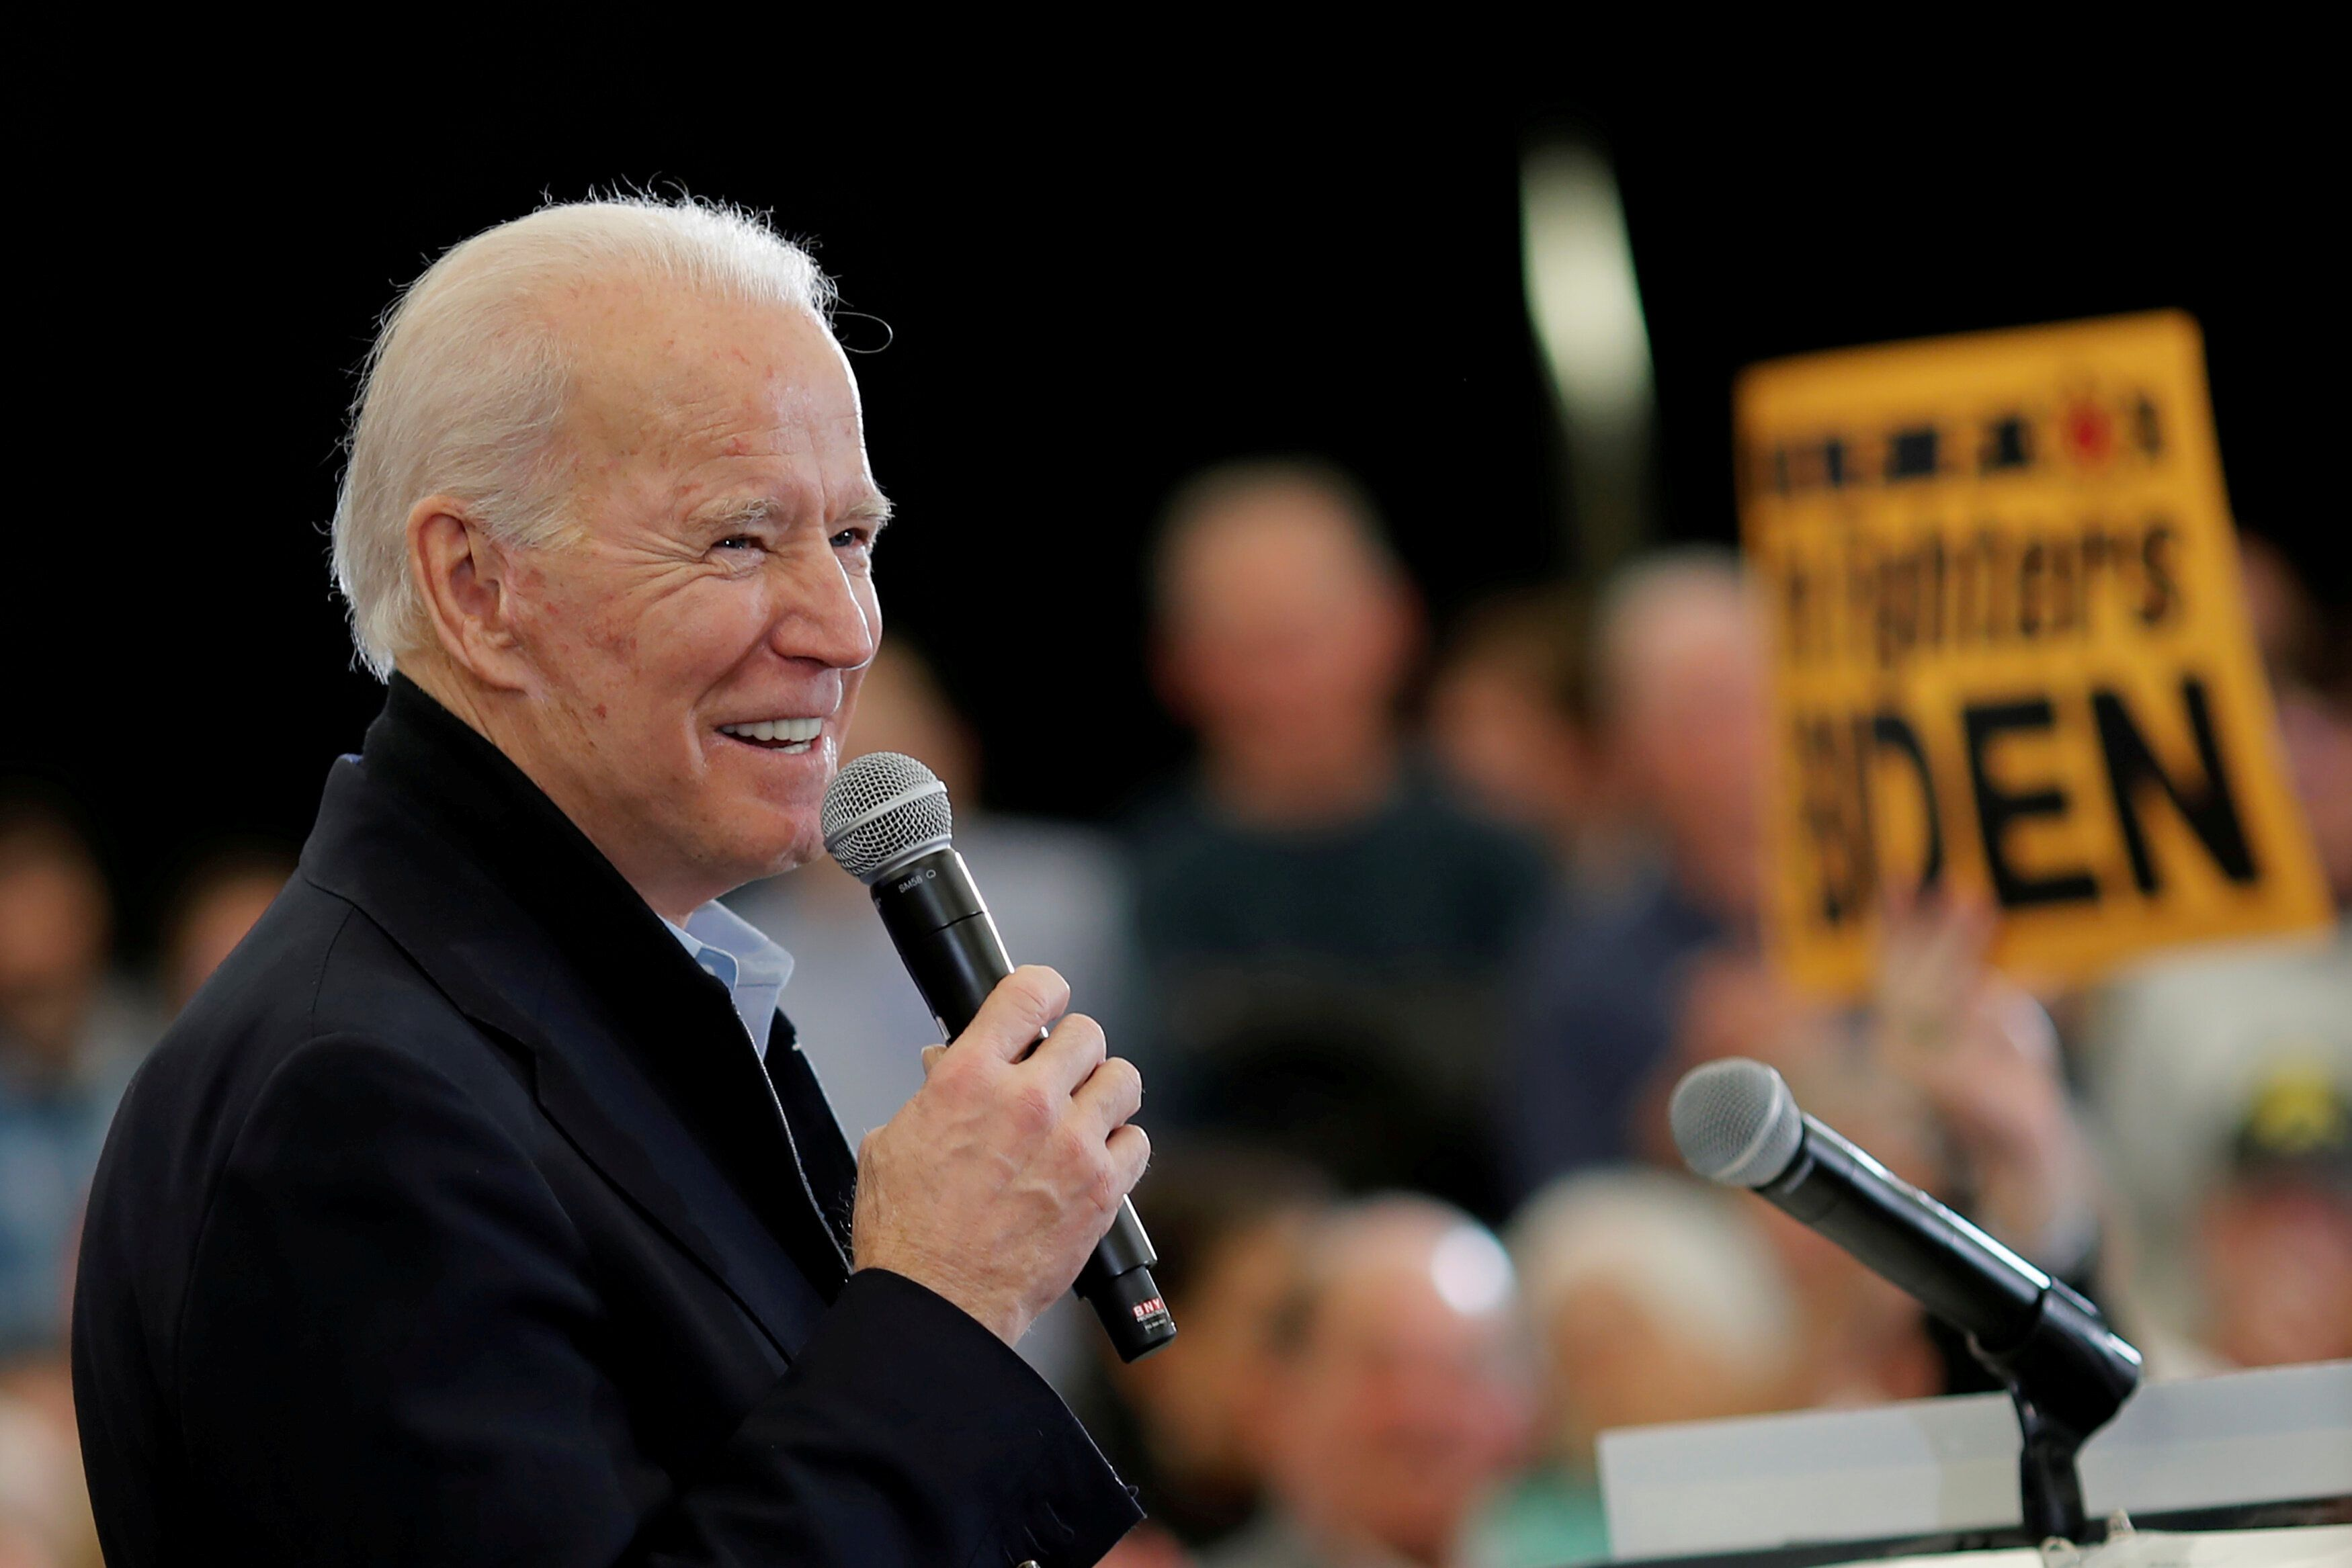 Joe Biden Reportedly Planning Visit To Georgia Where Polls Show Very Tight Race